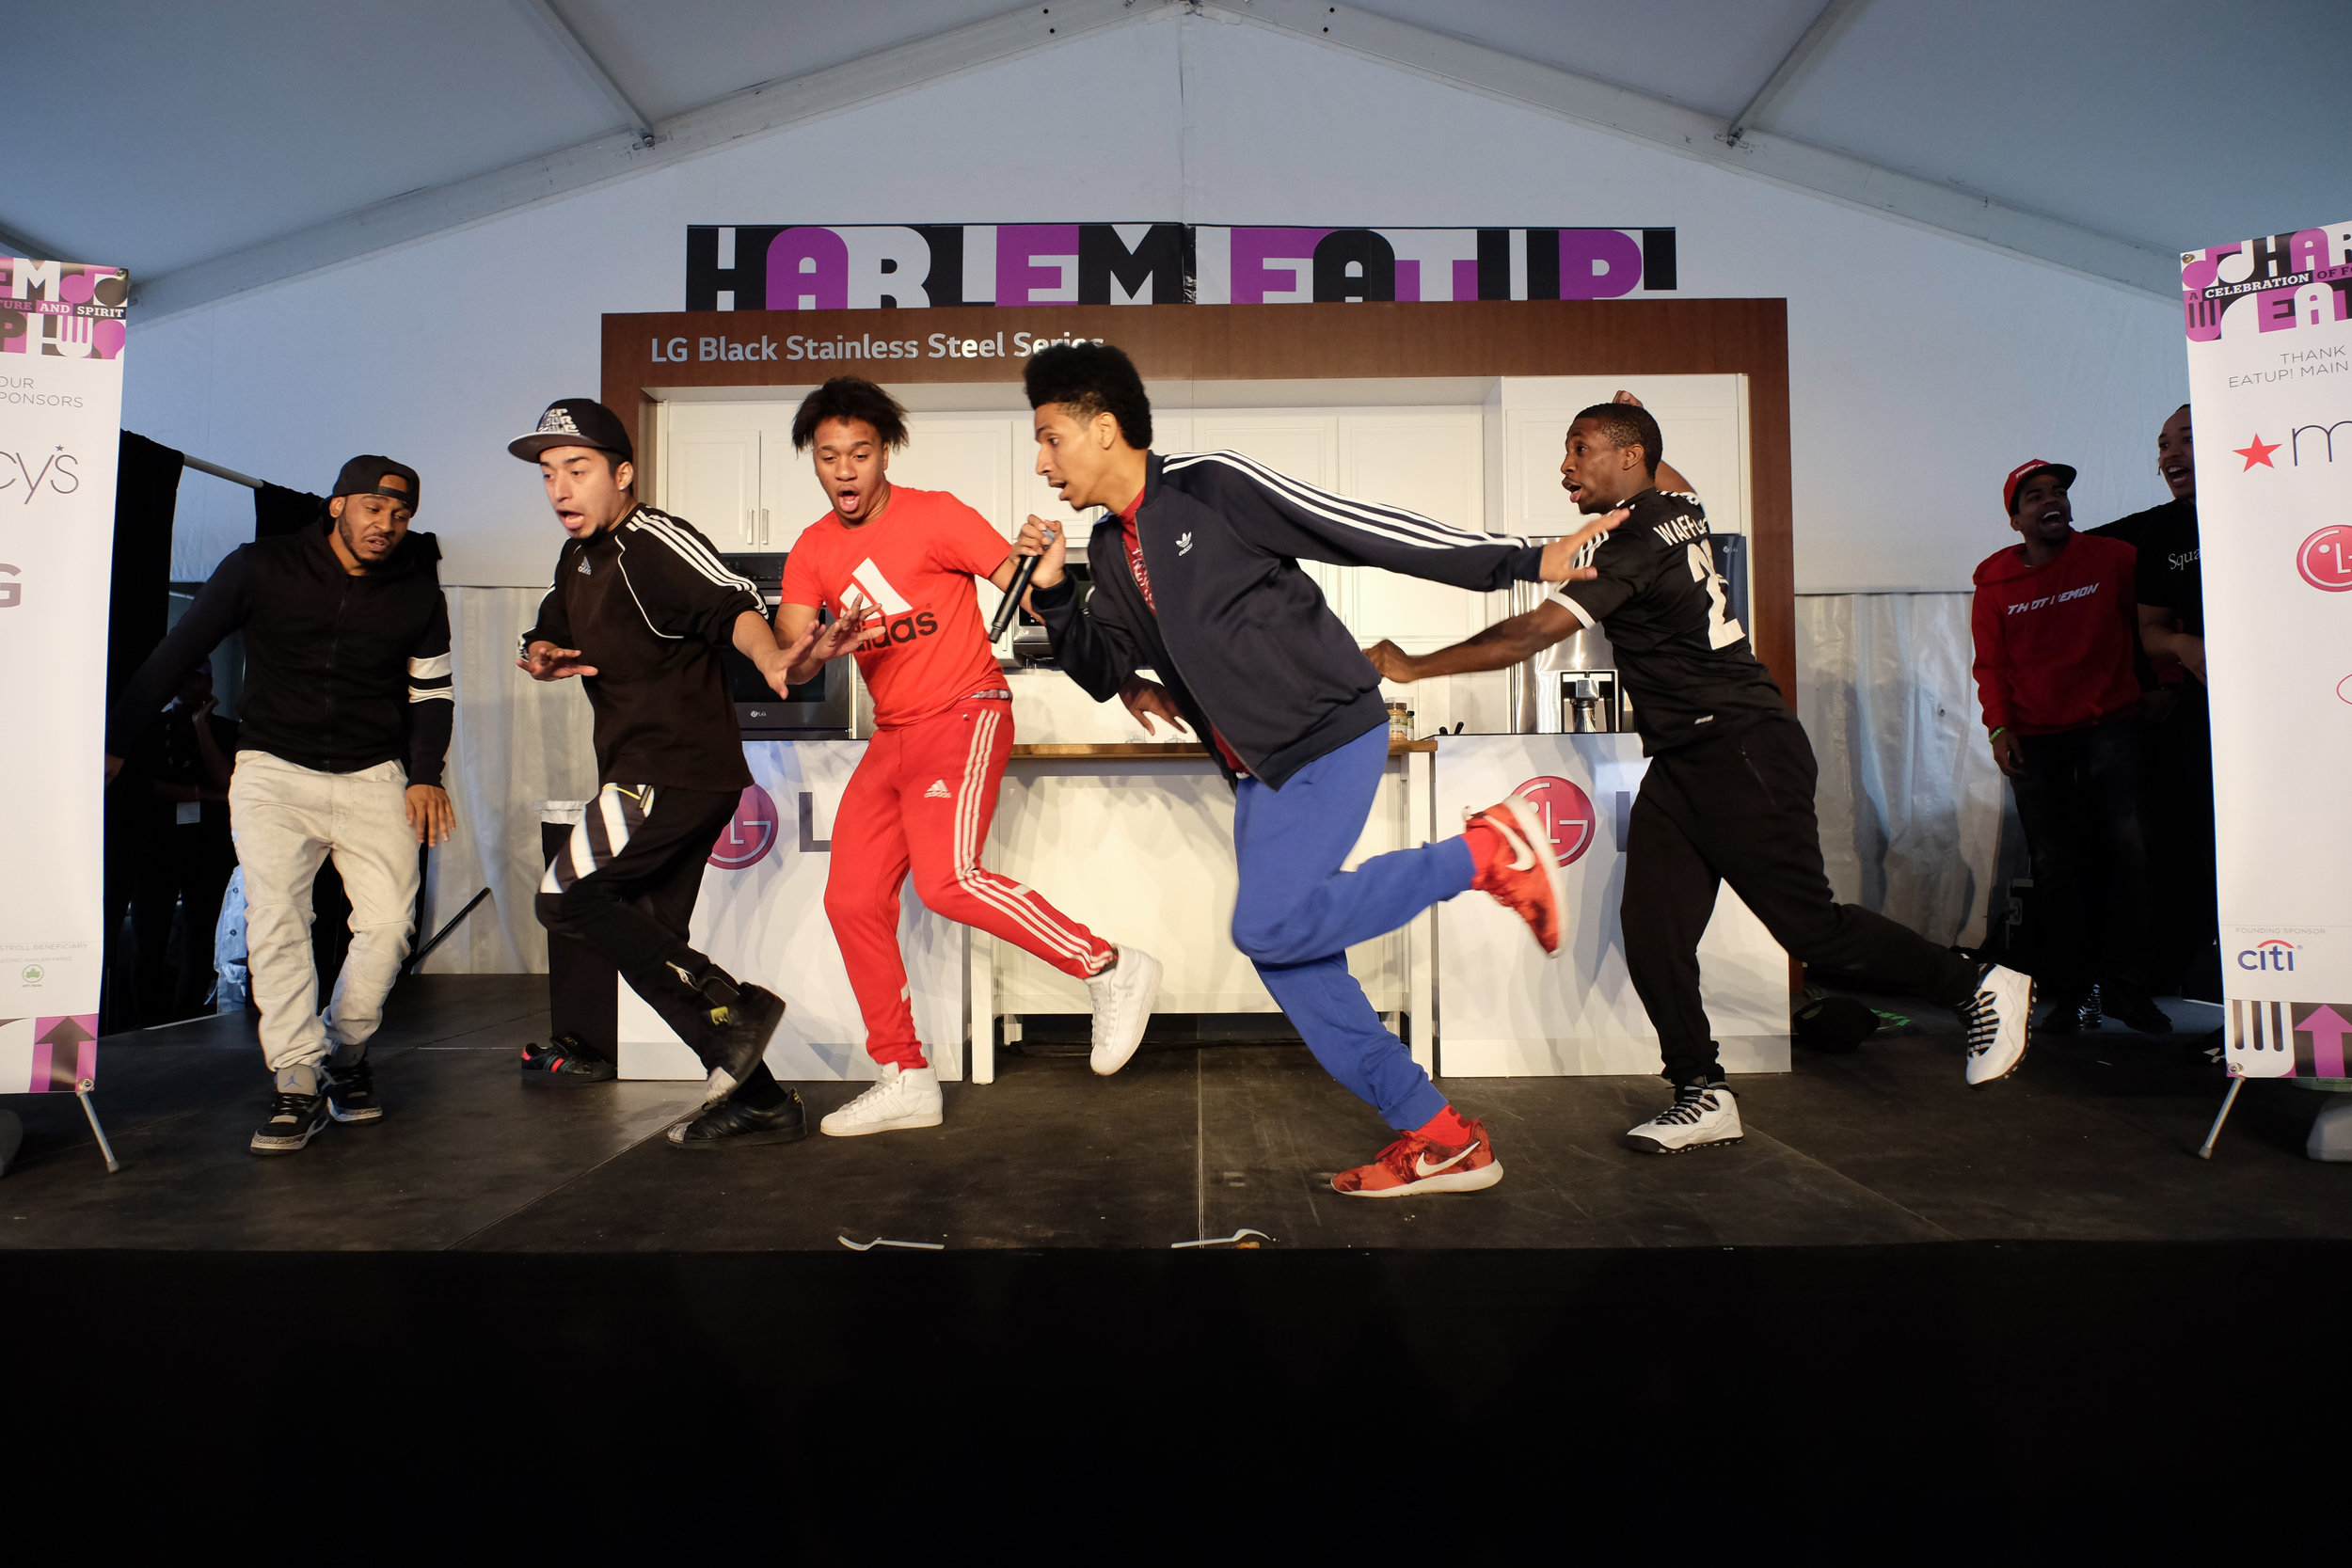 Harlem EatUp! : Best Performance and Entertainment in Harlem